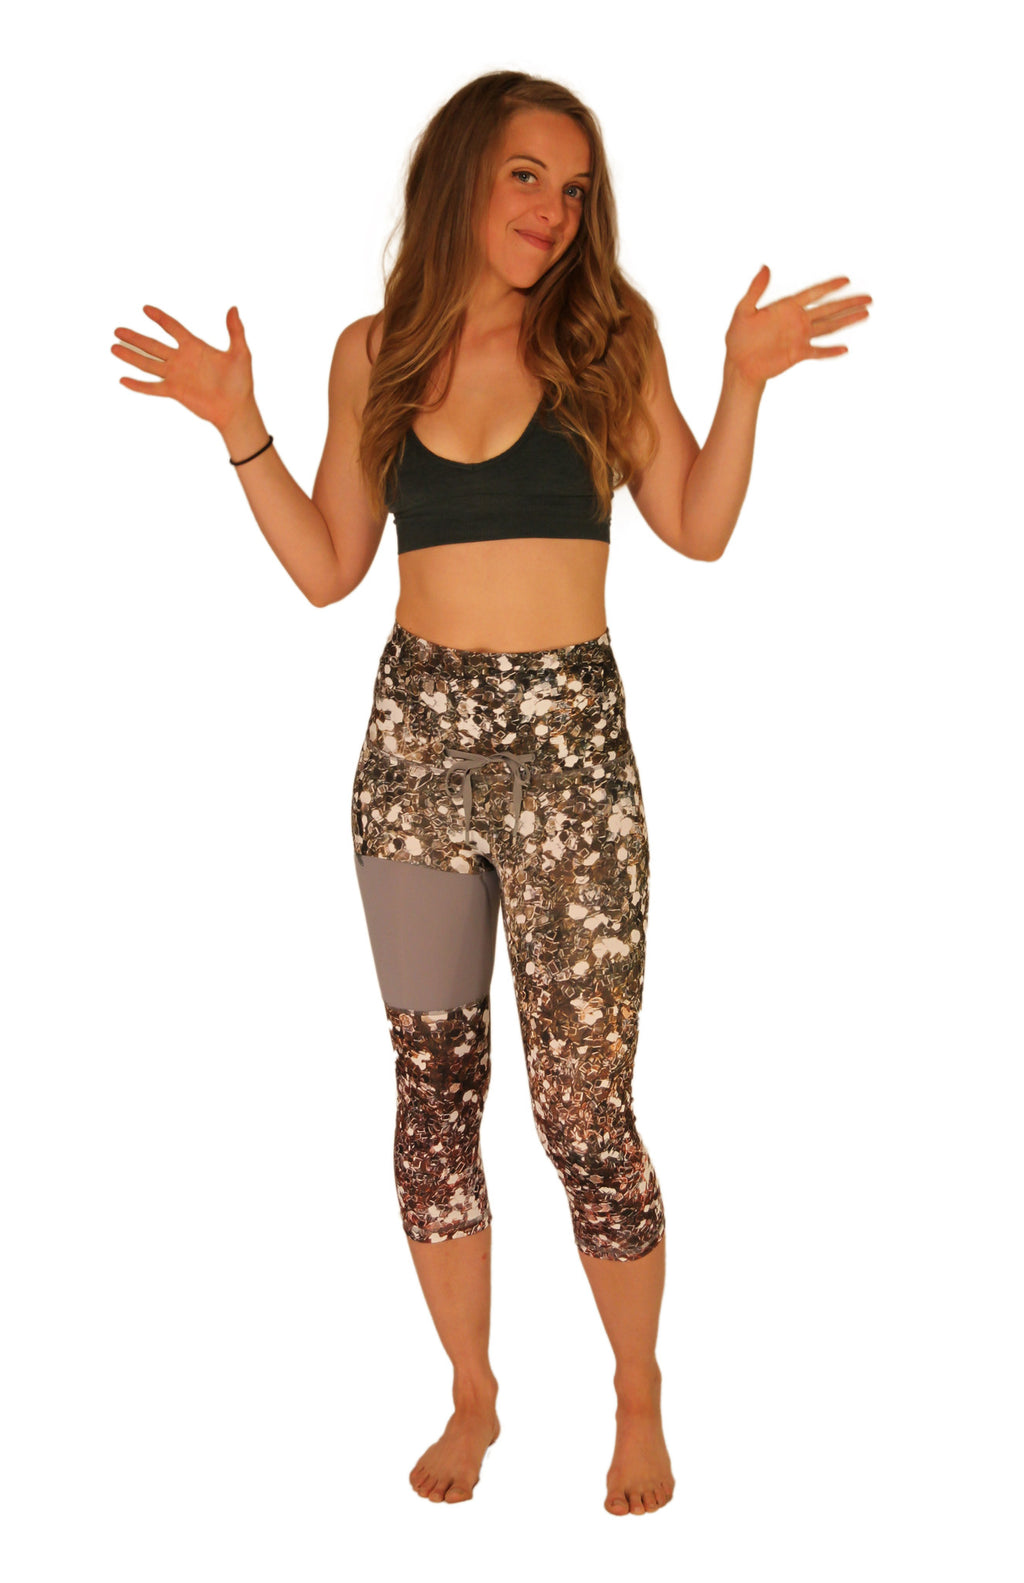 Don't Sweat, Sparkle Fitness Capri - XS only